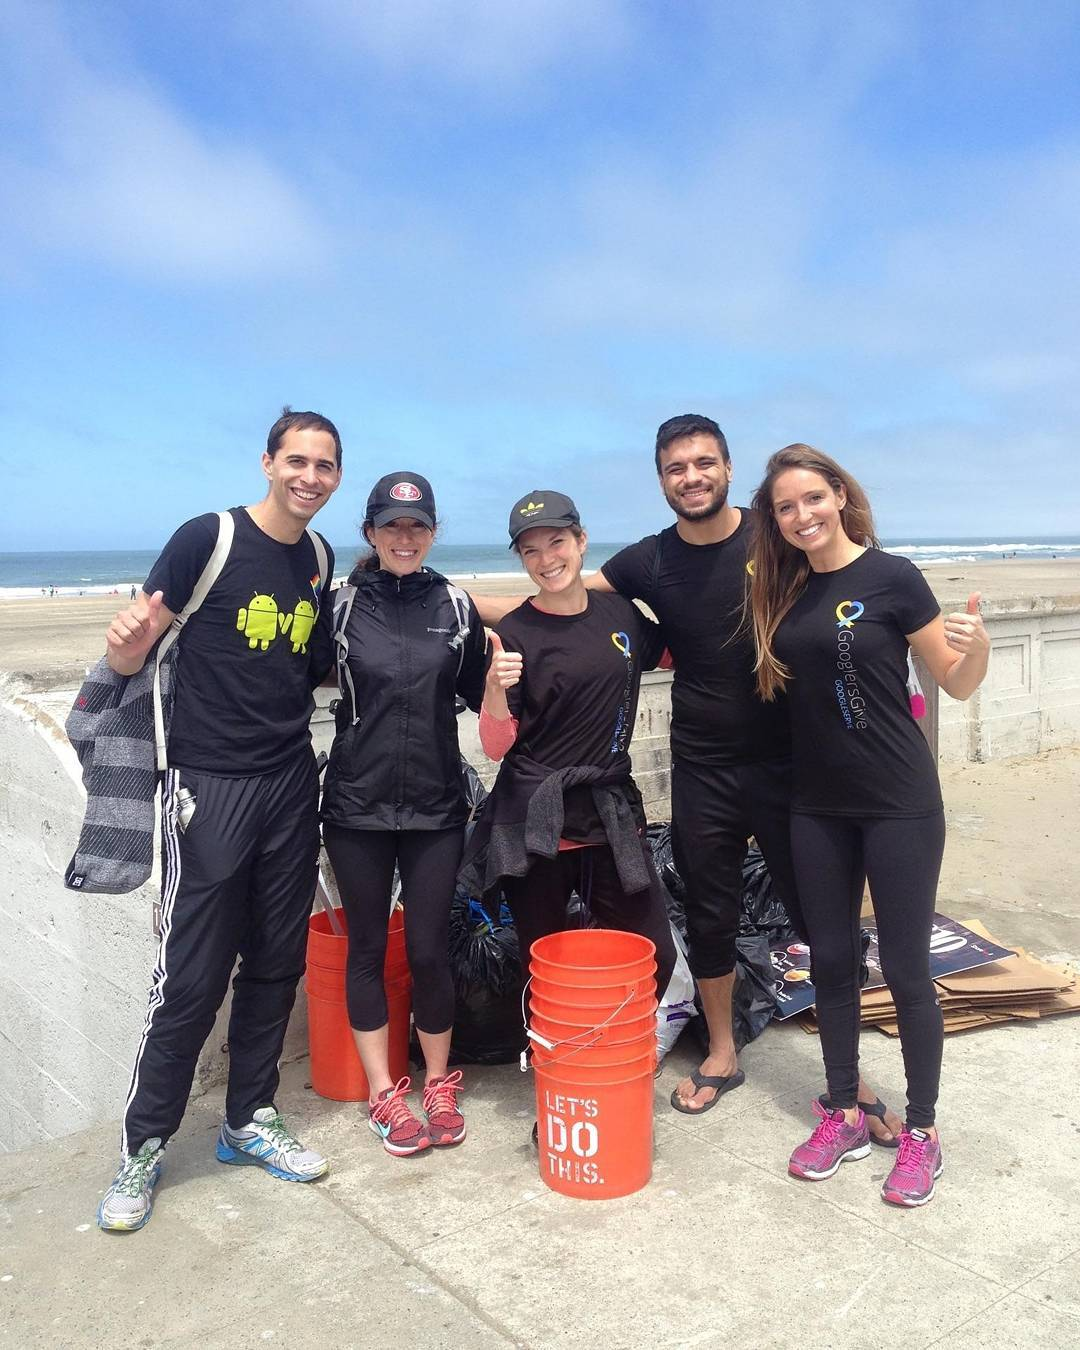 Thanks to the @google team that came out to OB today and collected 300 lbs of trash! #wastefreeOB #googleserve2016 #sfsurfrider #surfriderfoundation #protectandenjoy #obsf